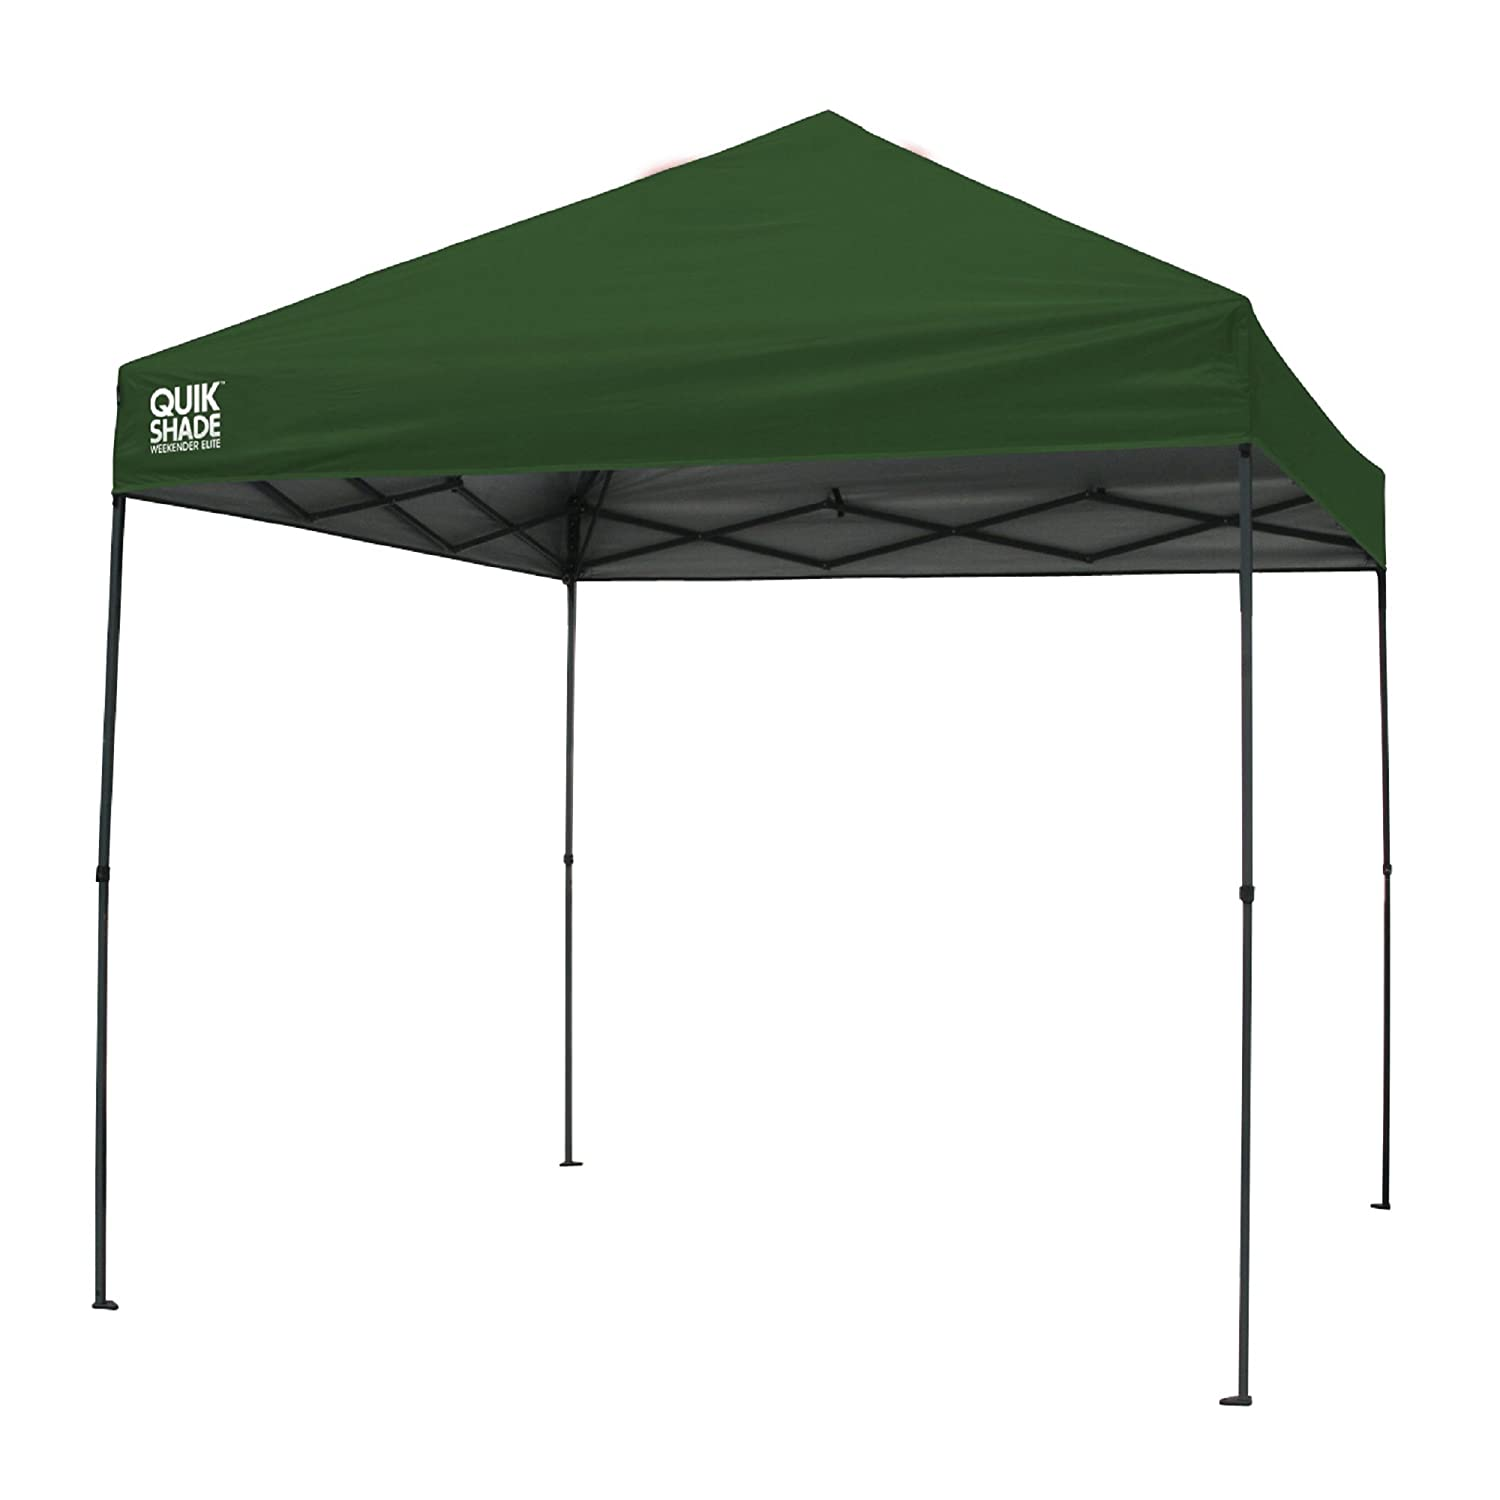 Amazon.com Quik Shade Weekender Elite WE100 10u0027x10u0027 Instant Canopy - Green Sports u0026 Outdoors  sc 1 st  Amazon.com & Amazon.com: Quik Shade Weekender Elite WE100 10u0027x10u0027 Instant ...